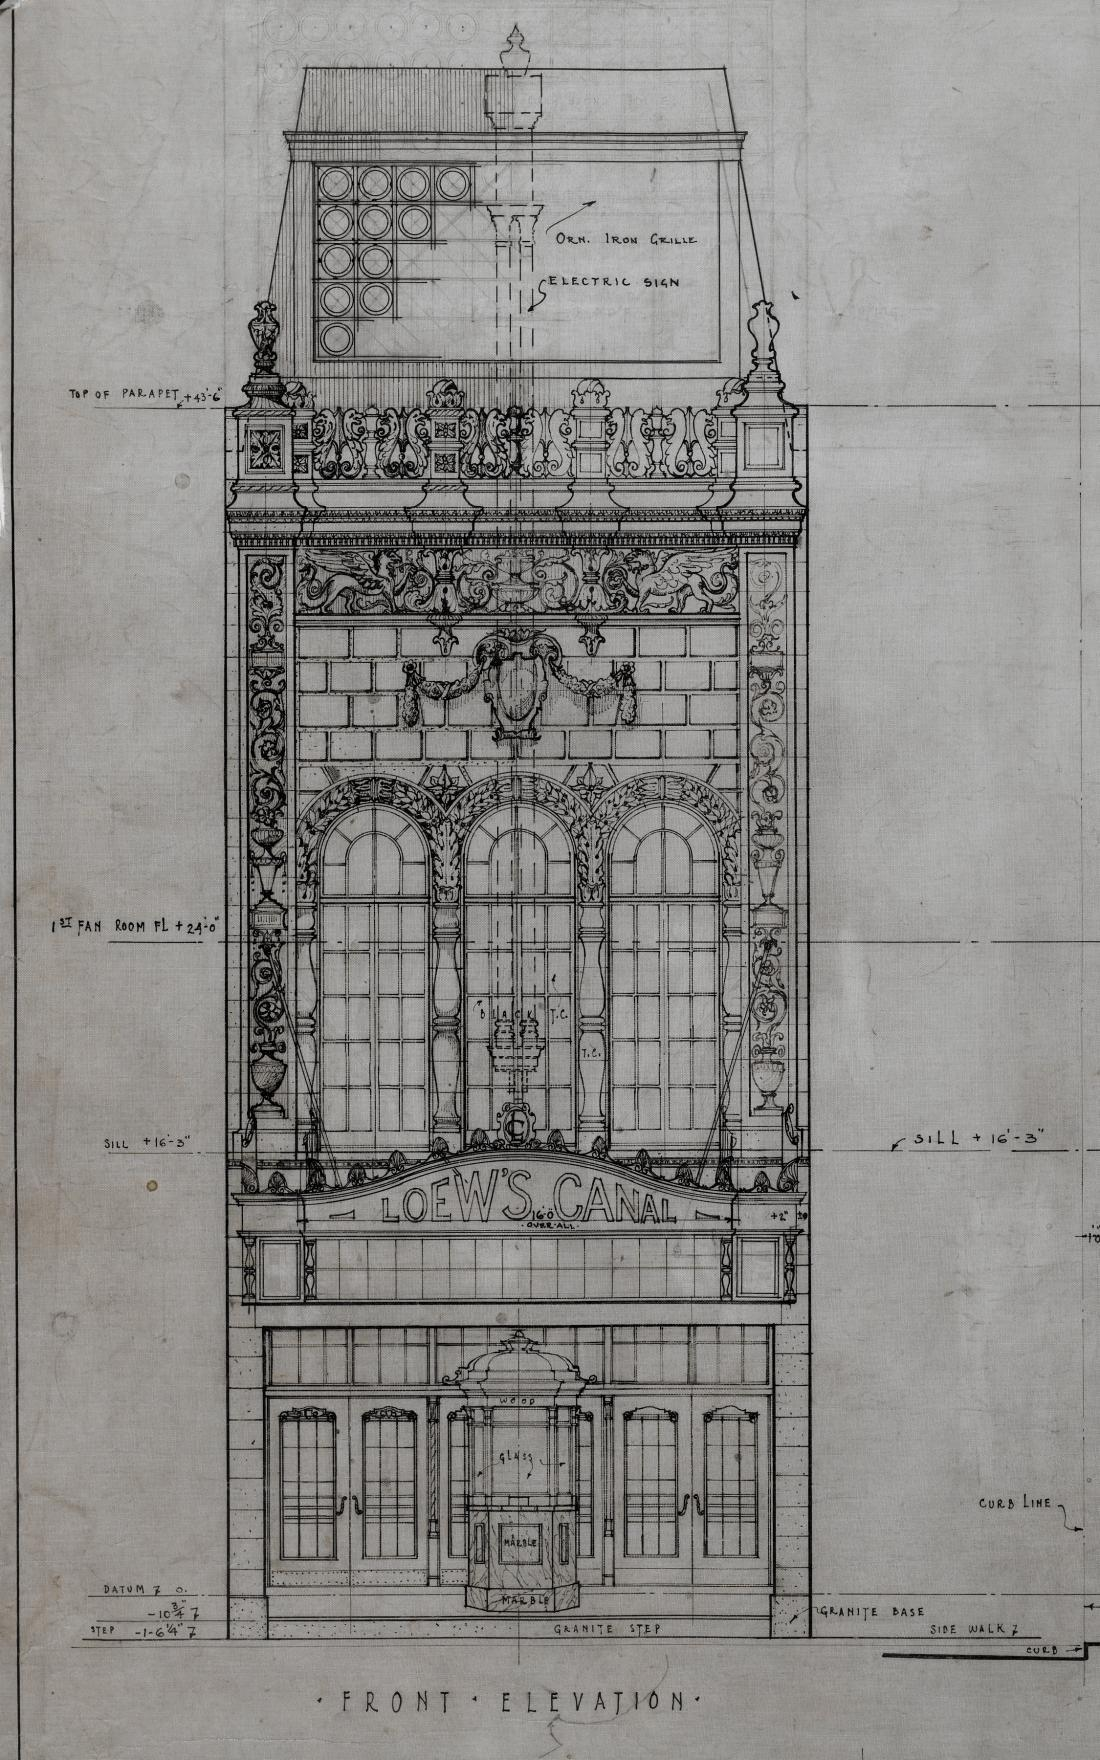 archimaps:  Elevation for Loew's Canal Street Theatre, New York